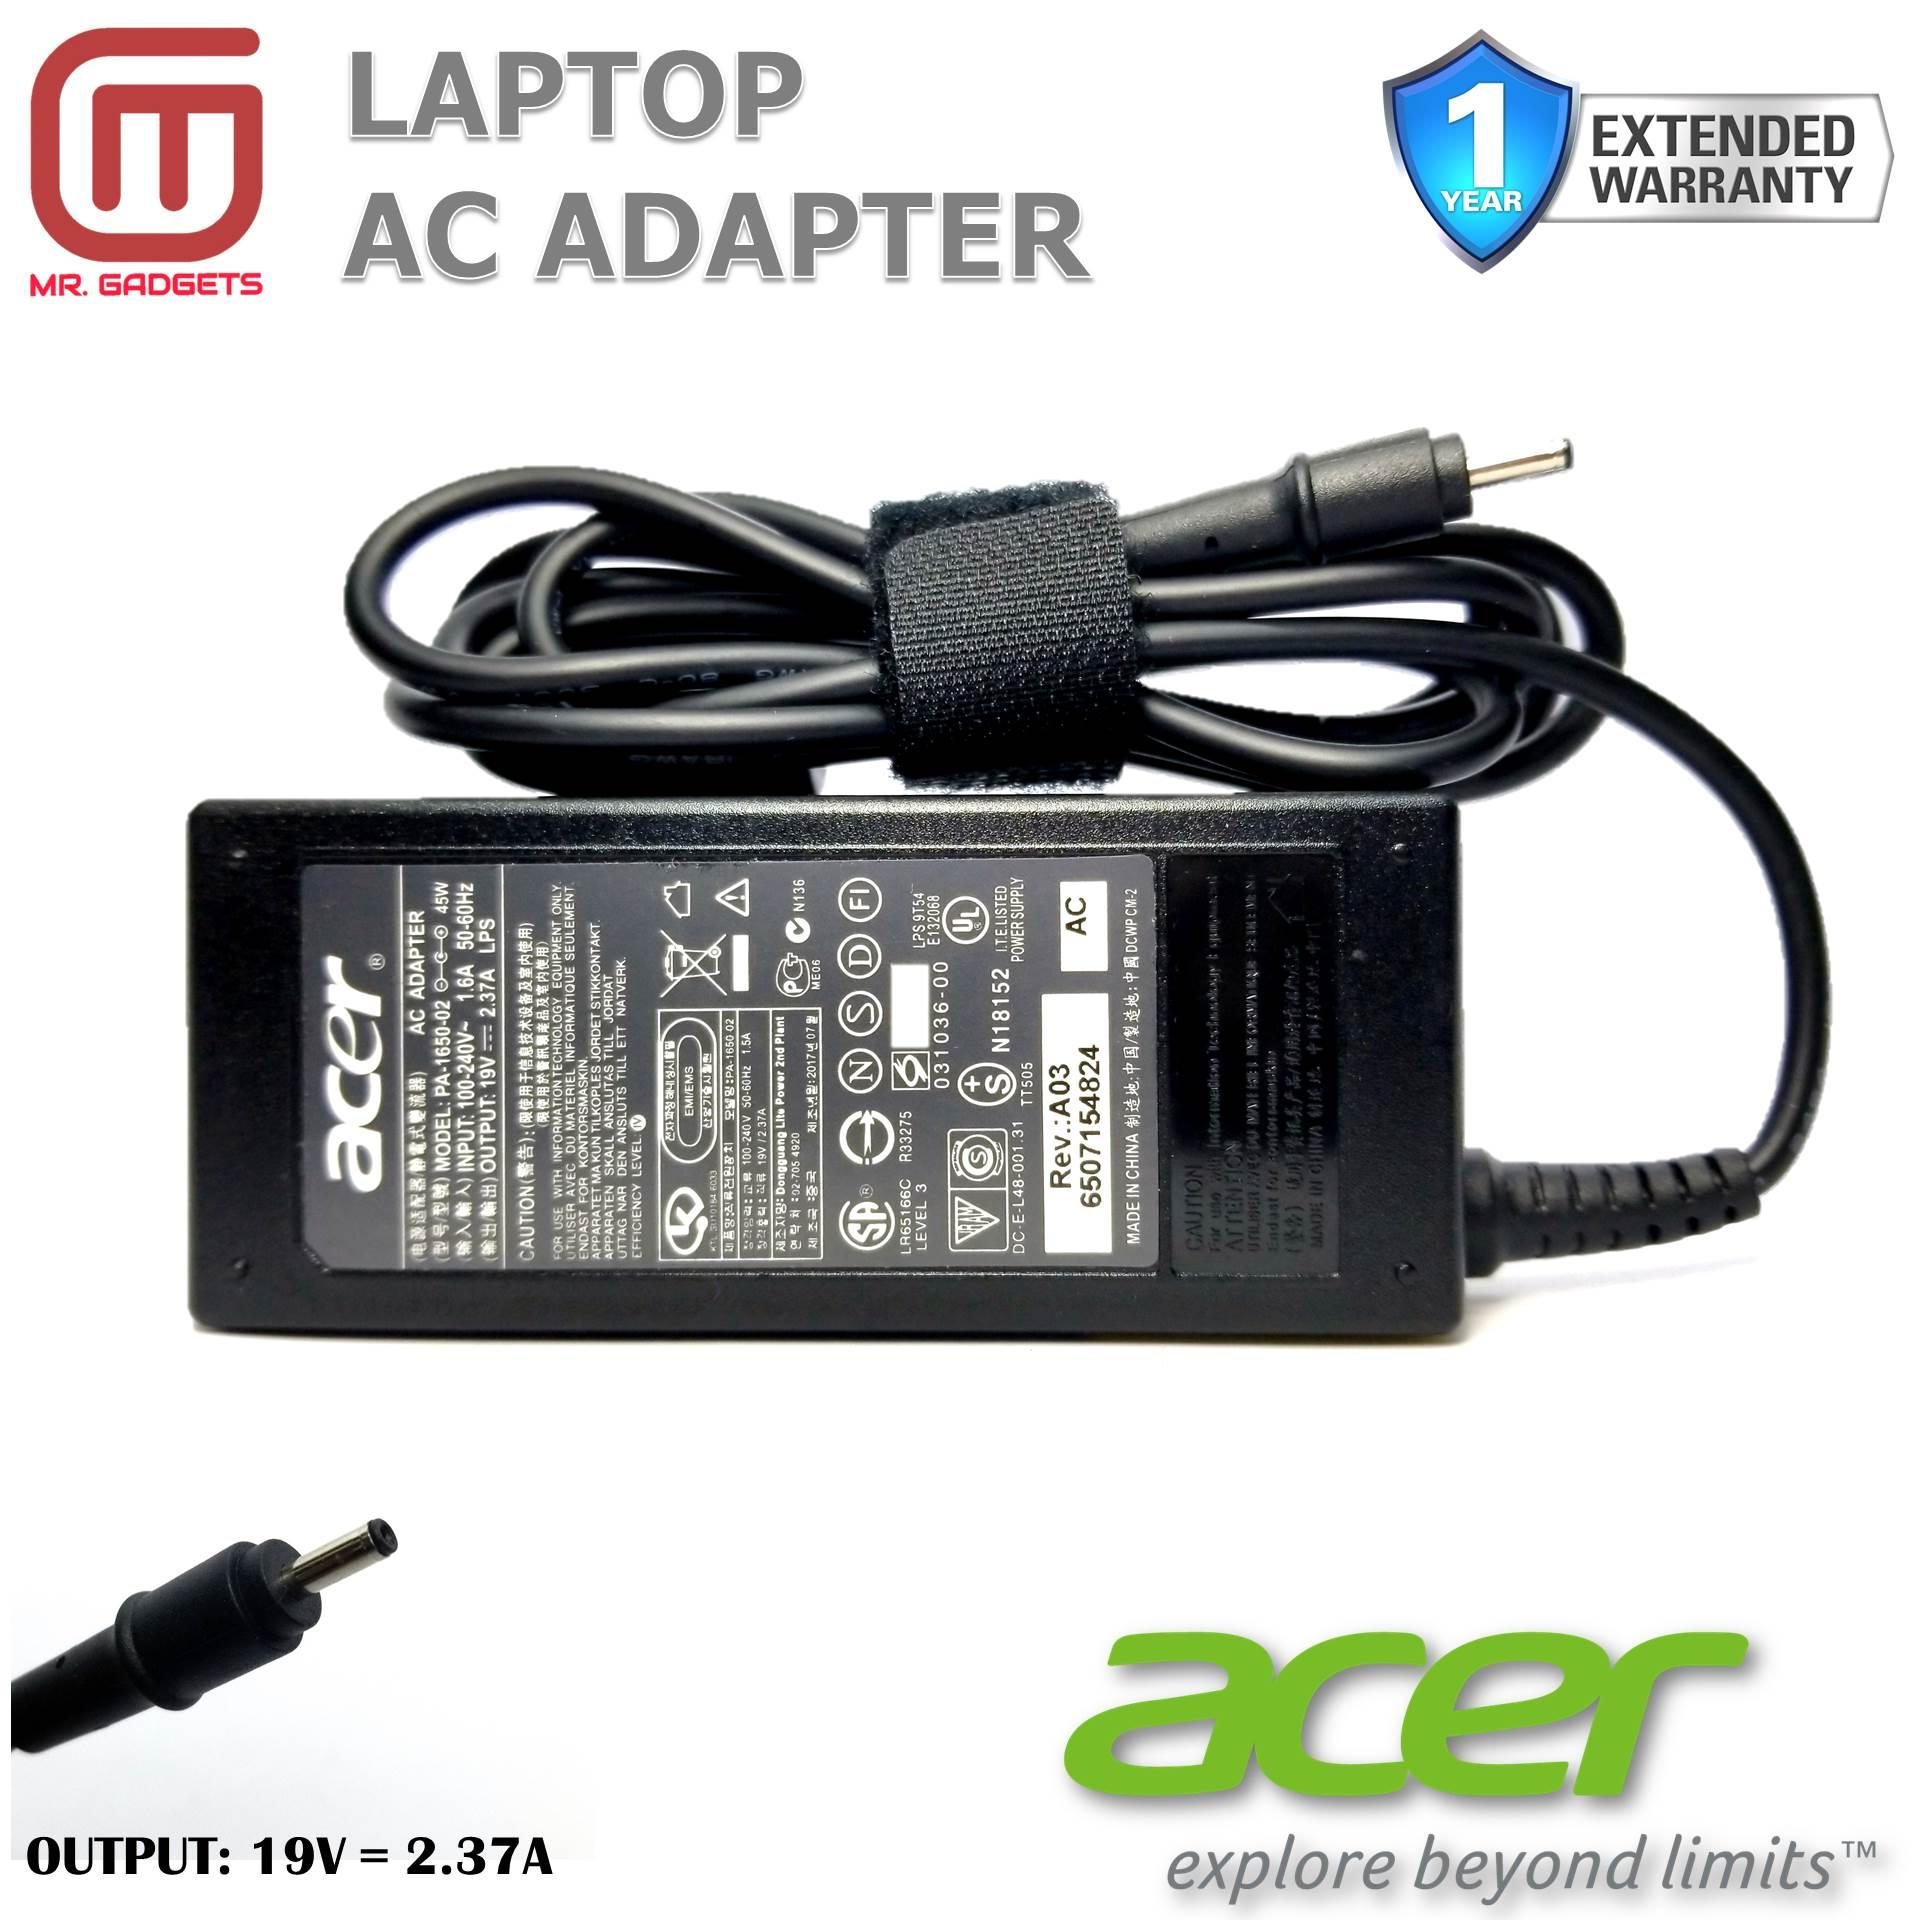 Sell Acer Travelmate Tmp249 Cheapest Best Quality Ph Store Keyboard P243 4750 Tm4750 Php 649 Laptop Charger Adapter For